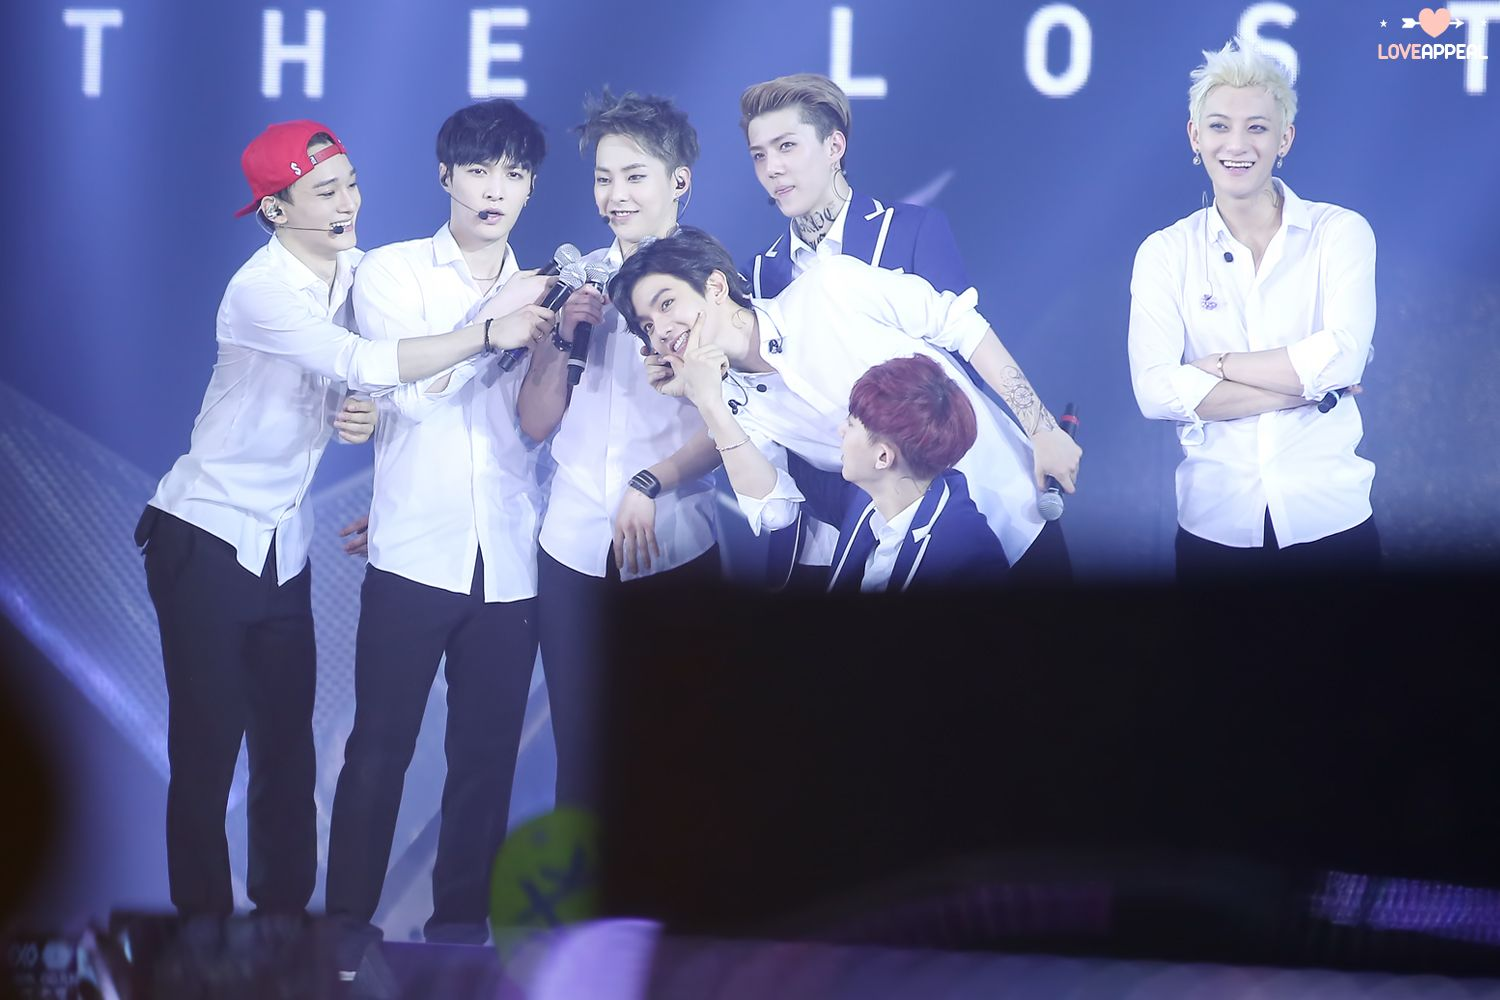 140601 EXO The Lost Planet in Hongkong - Chen, Lay, Xiumin, Baekhyun, Sehun, Chanyeol, Tao